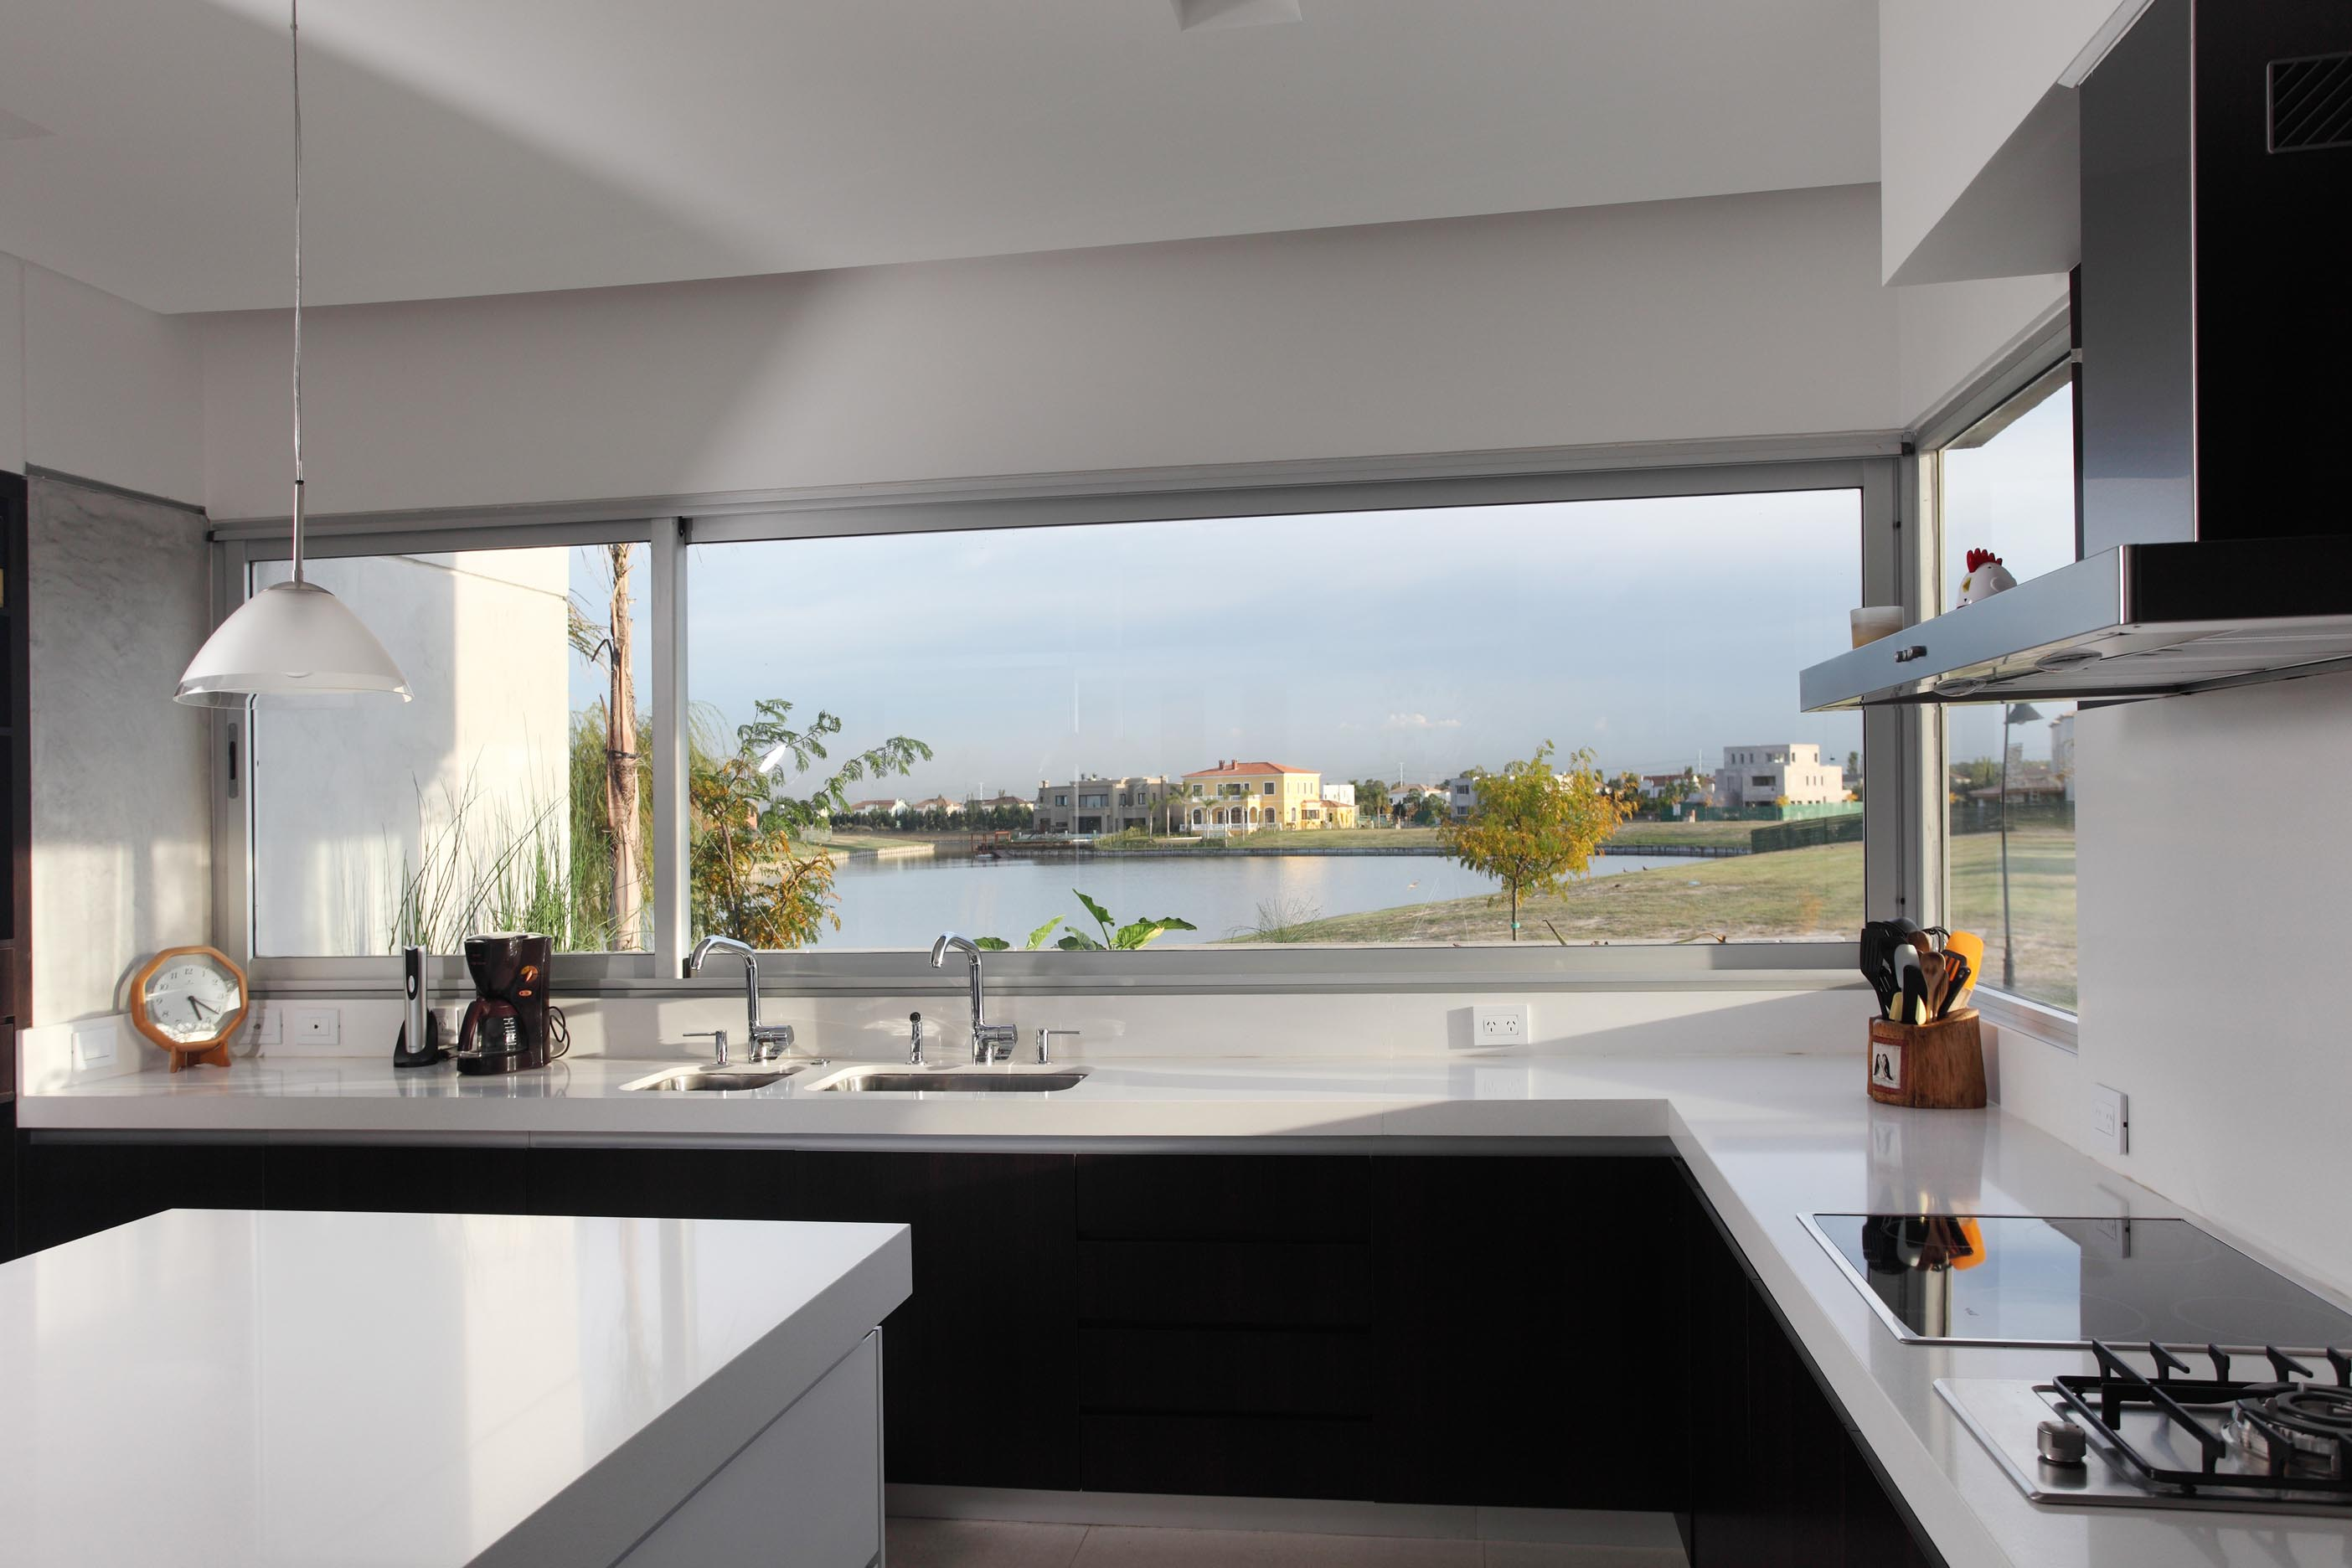 Wonderful Panoramic View from Glass Window in Modern Black and White Kitchen with Long Black Counter and White Island